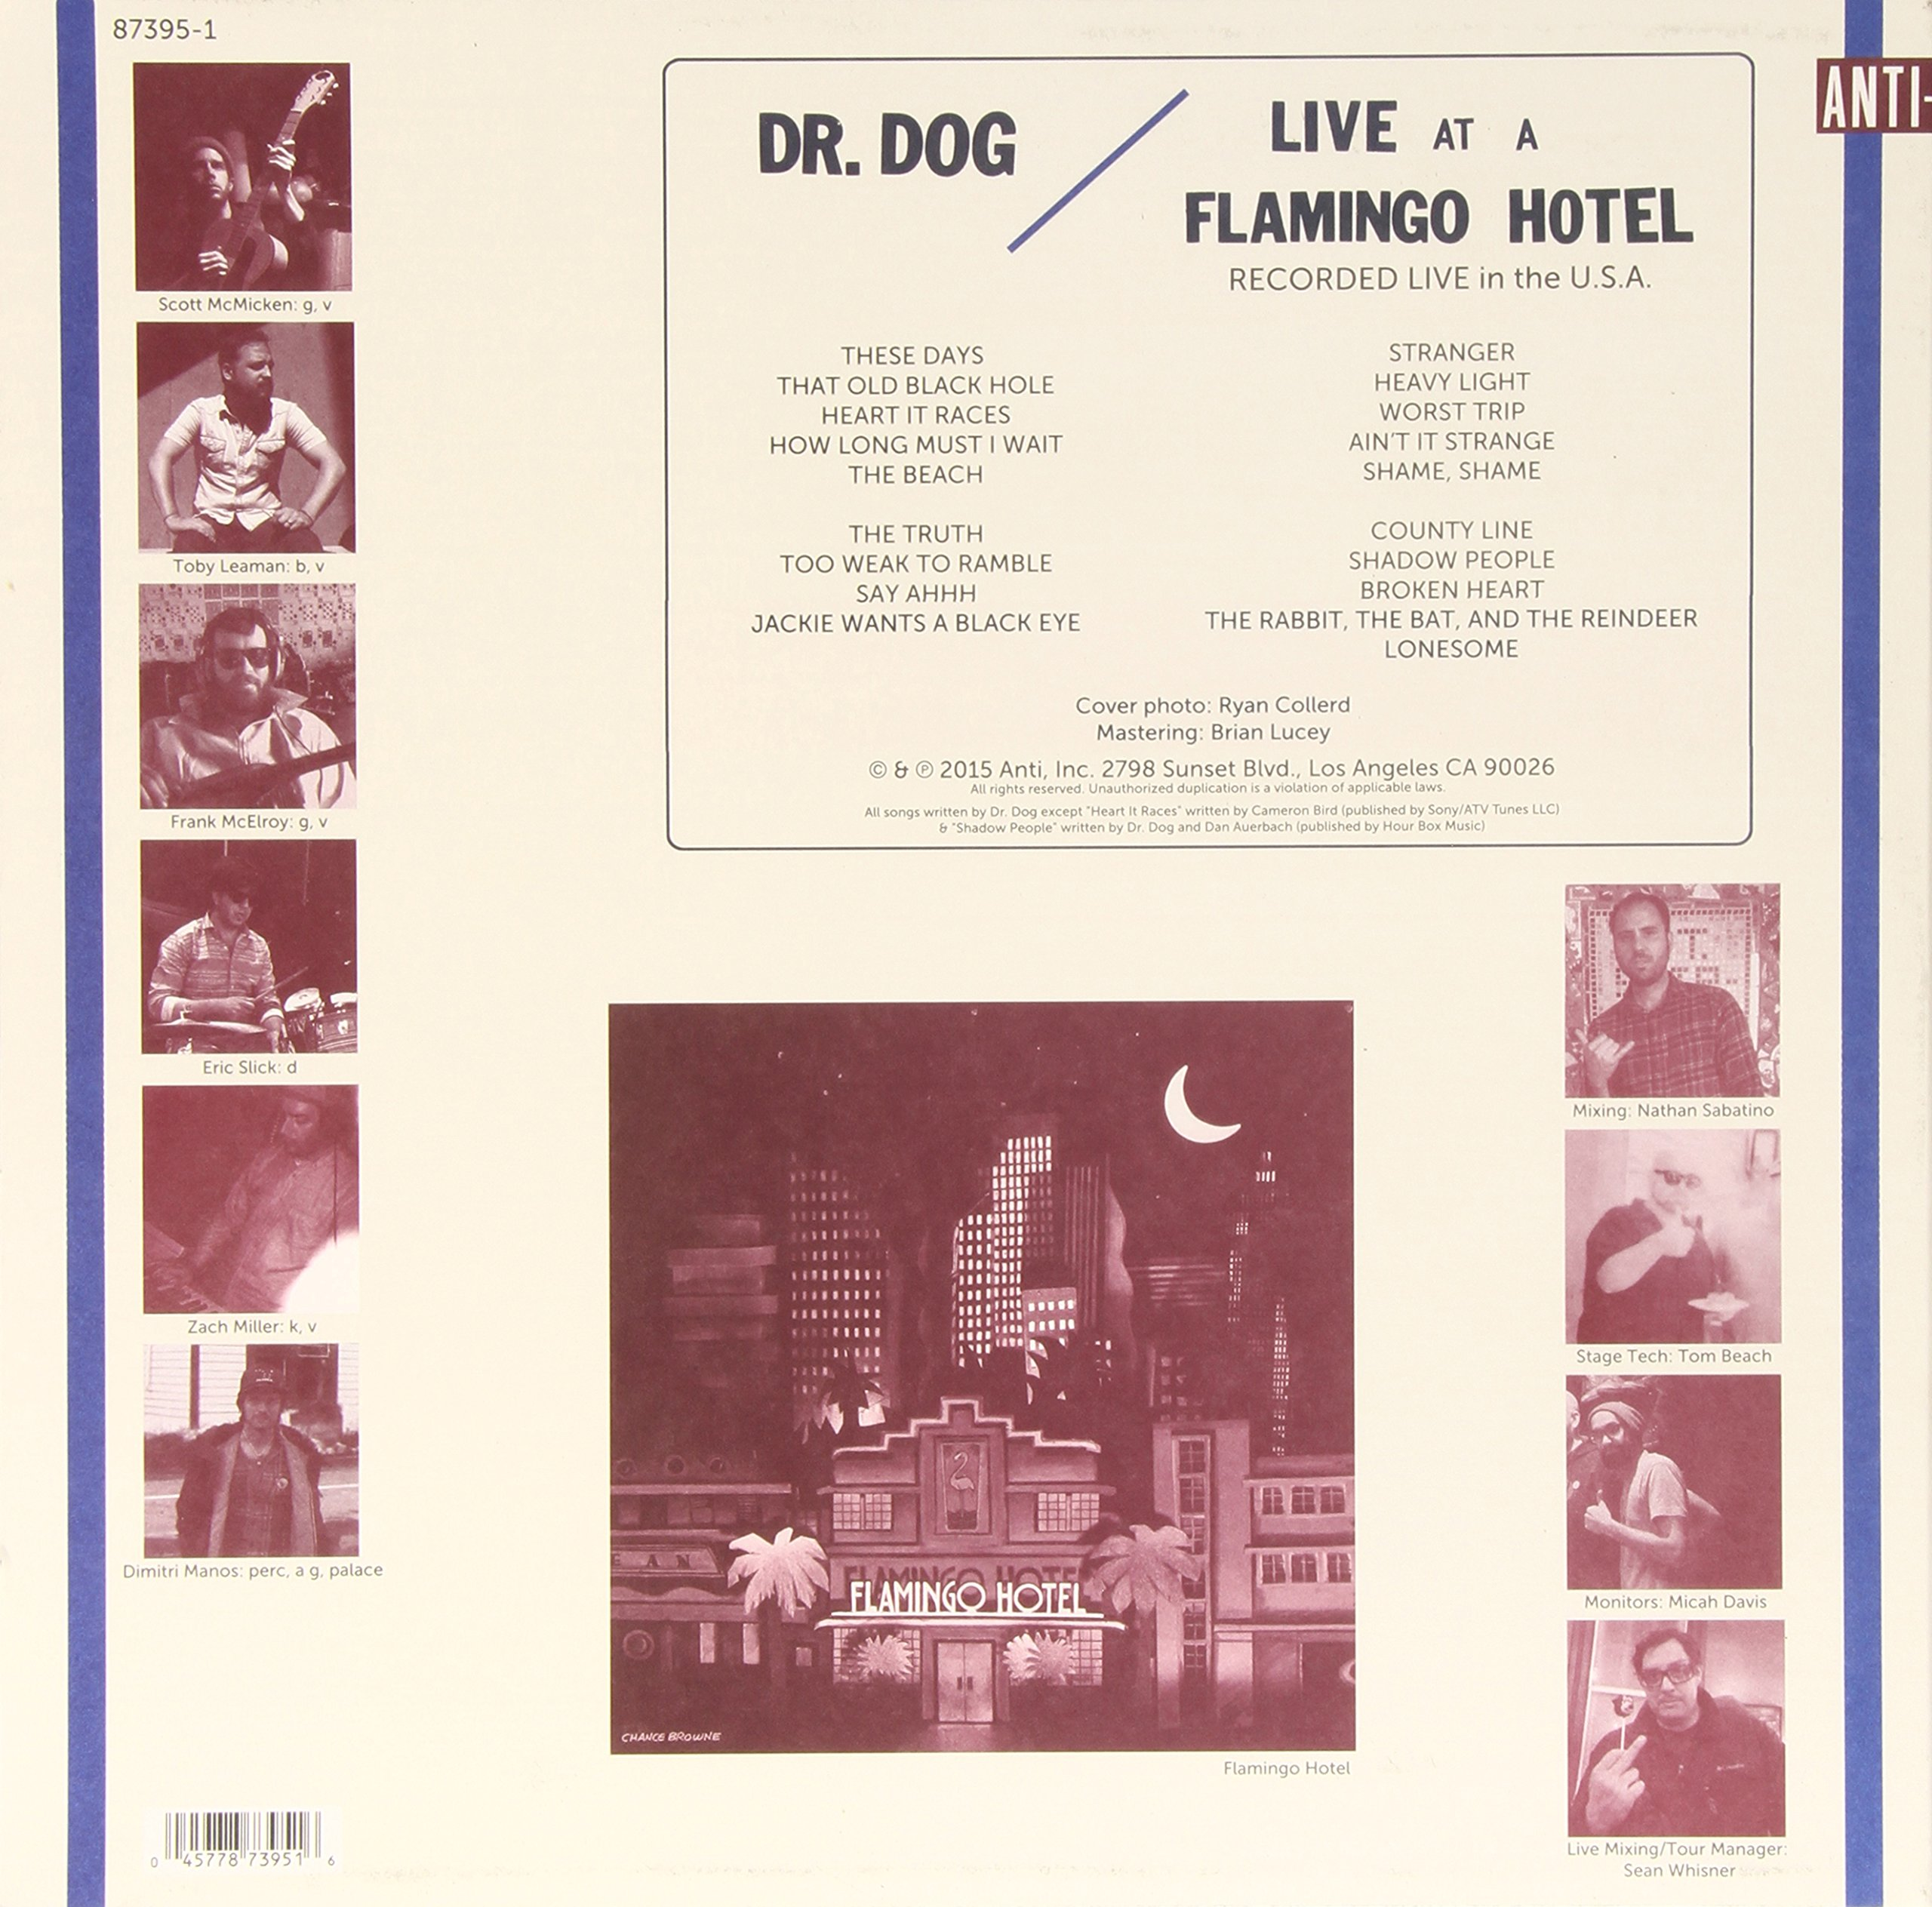 Live At A Flamingo Hotel (2-LP set, Includes download card) by Anti